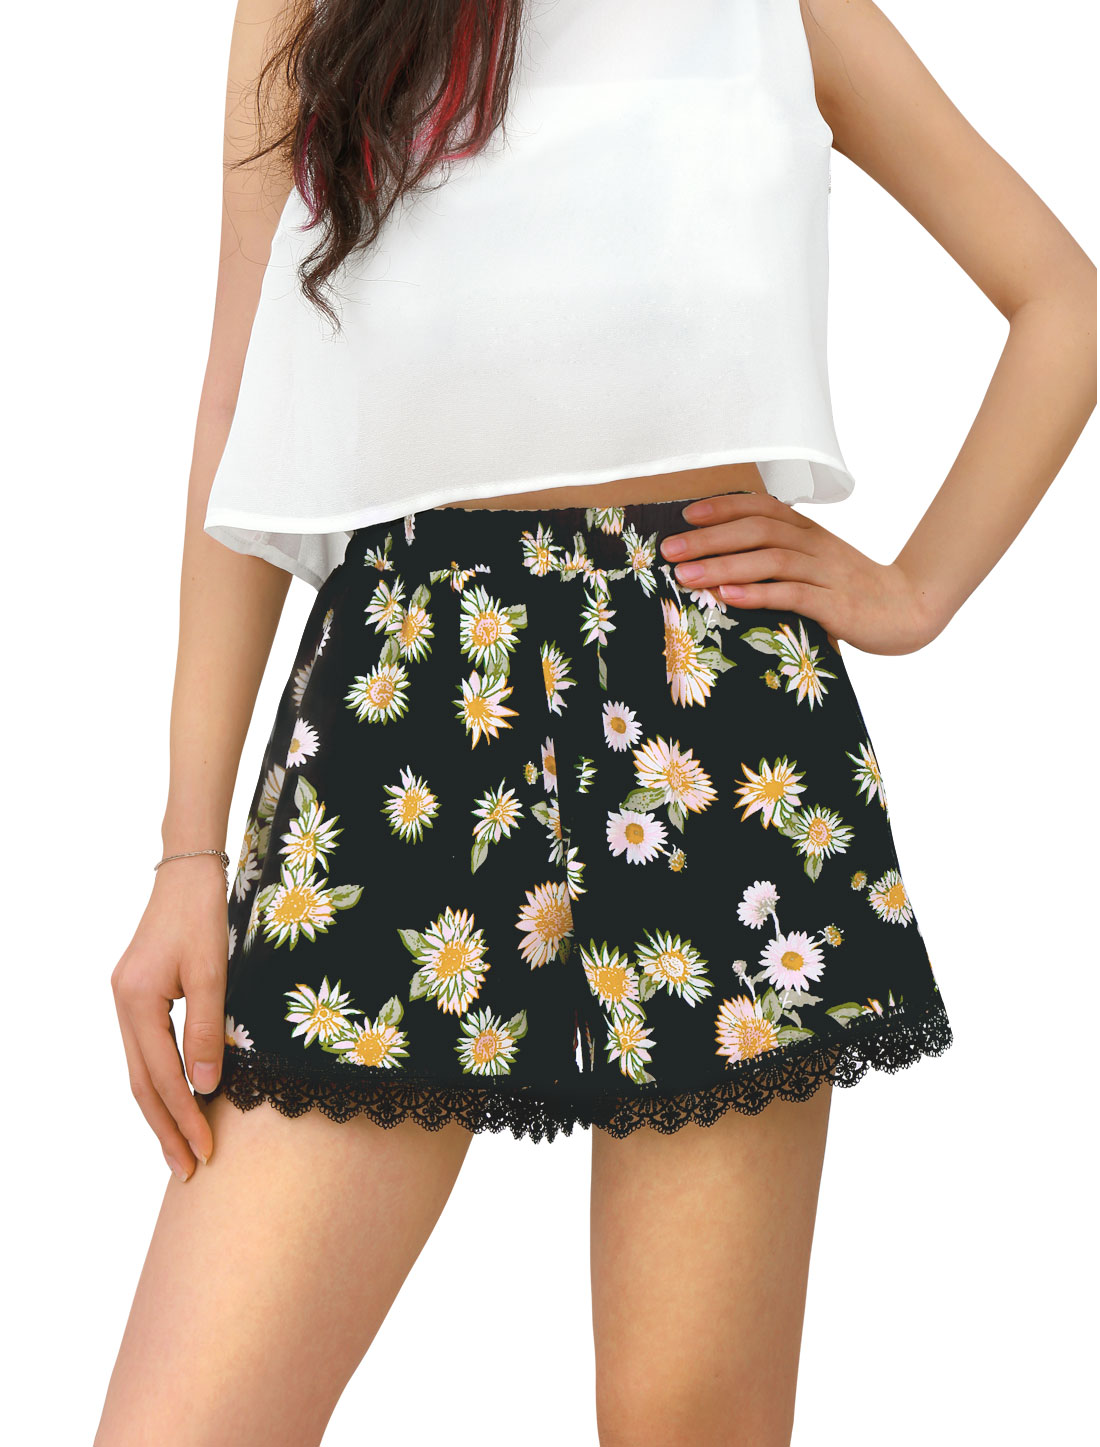 Women Stretchy Waist Allover Floral Prints Daisy Shorts Black XL